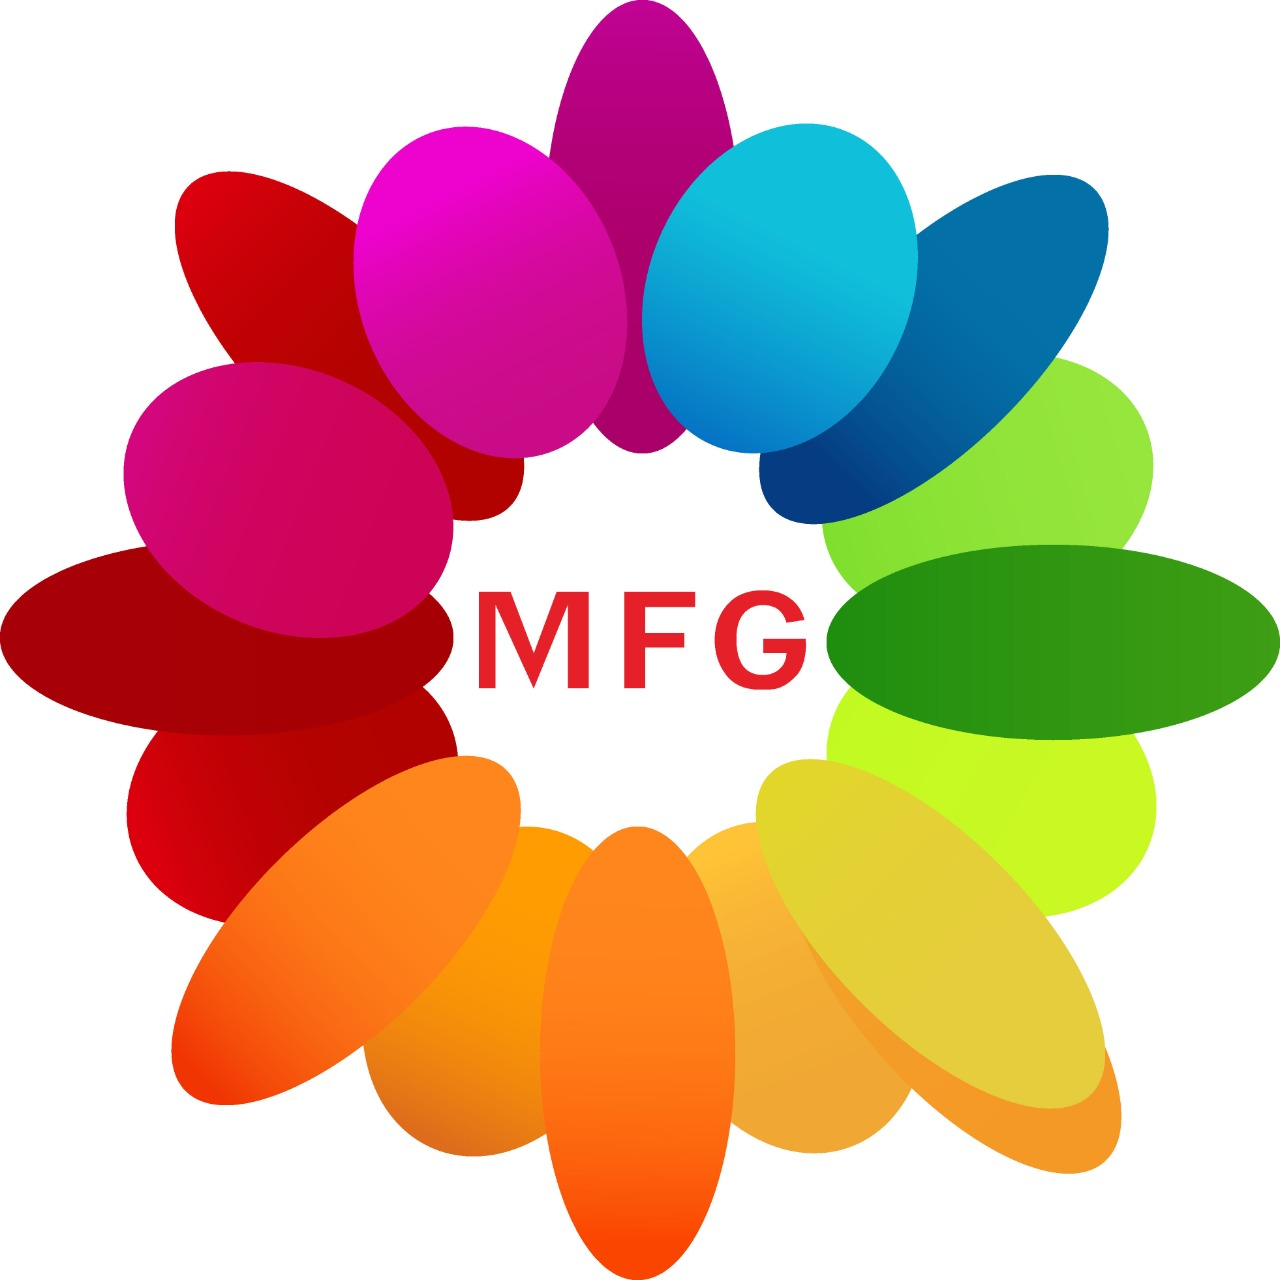 Bunch of orchids with fresh cream 1 kg butterscotch cake with a cute 6 inch teddy bear